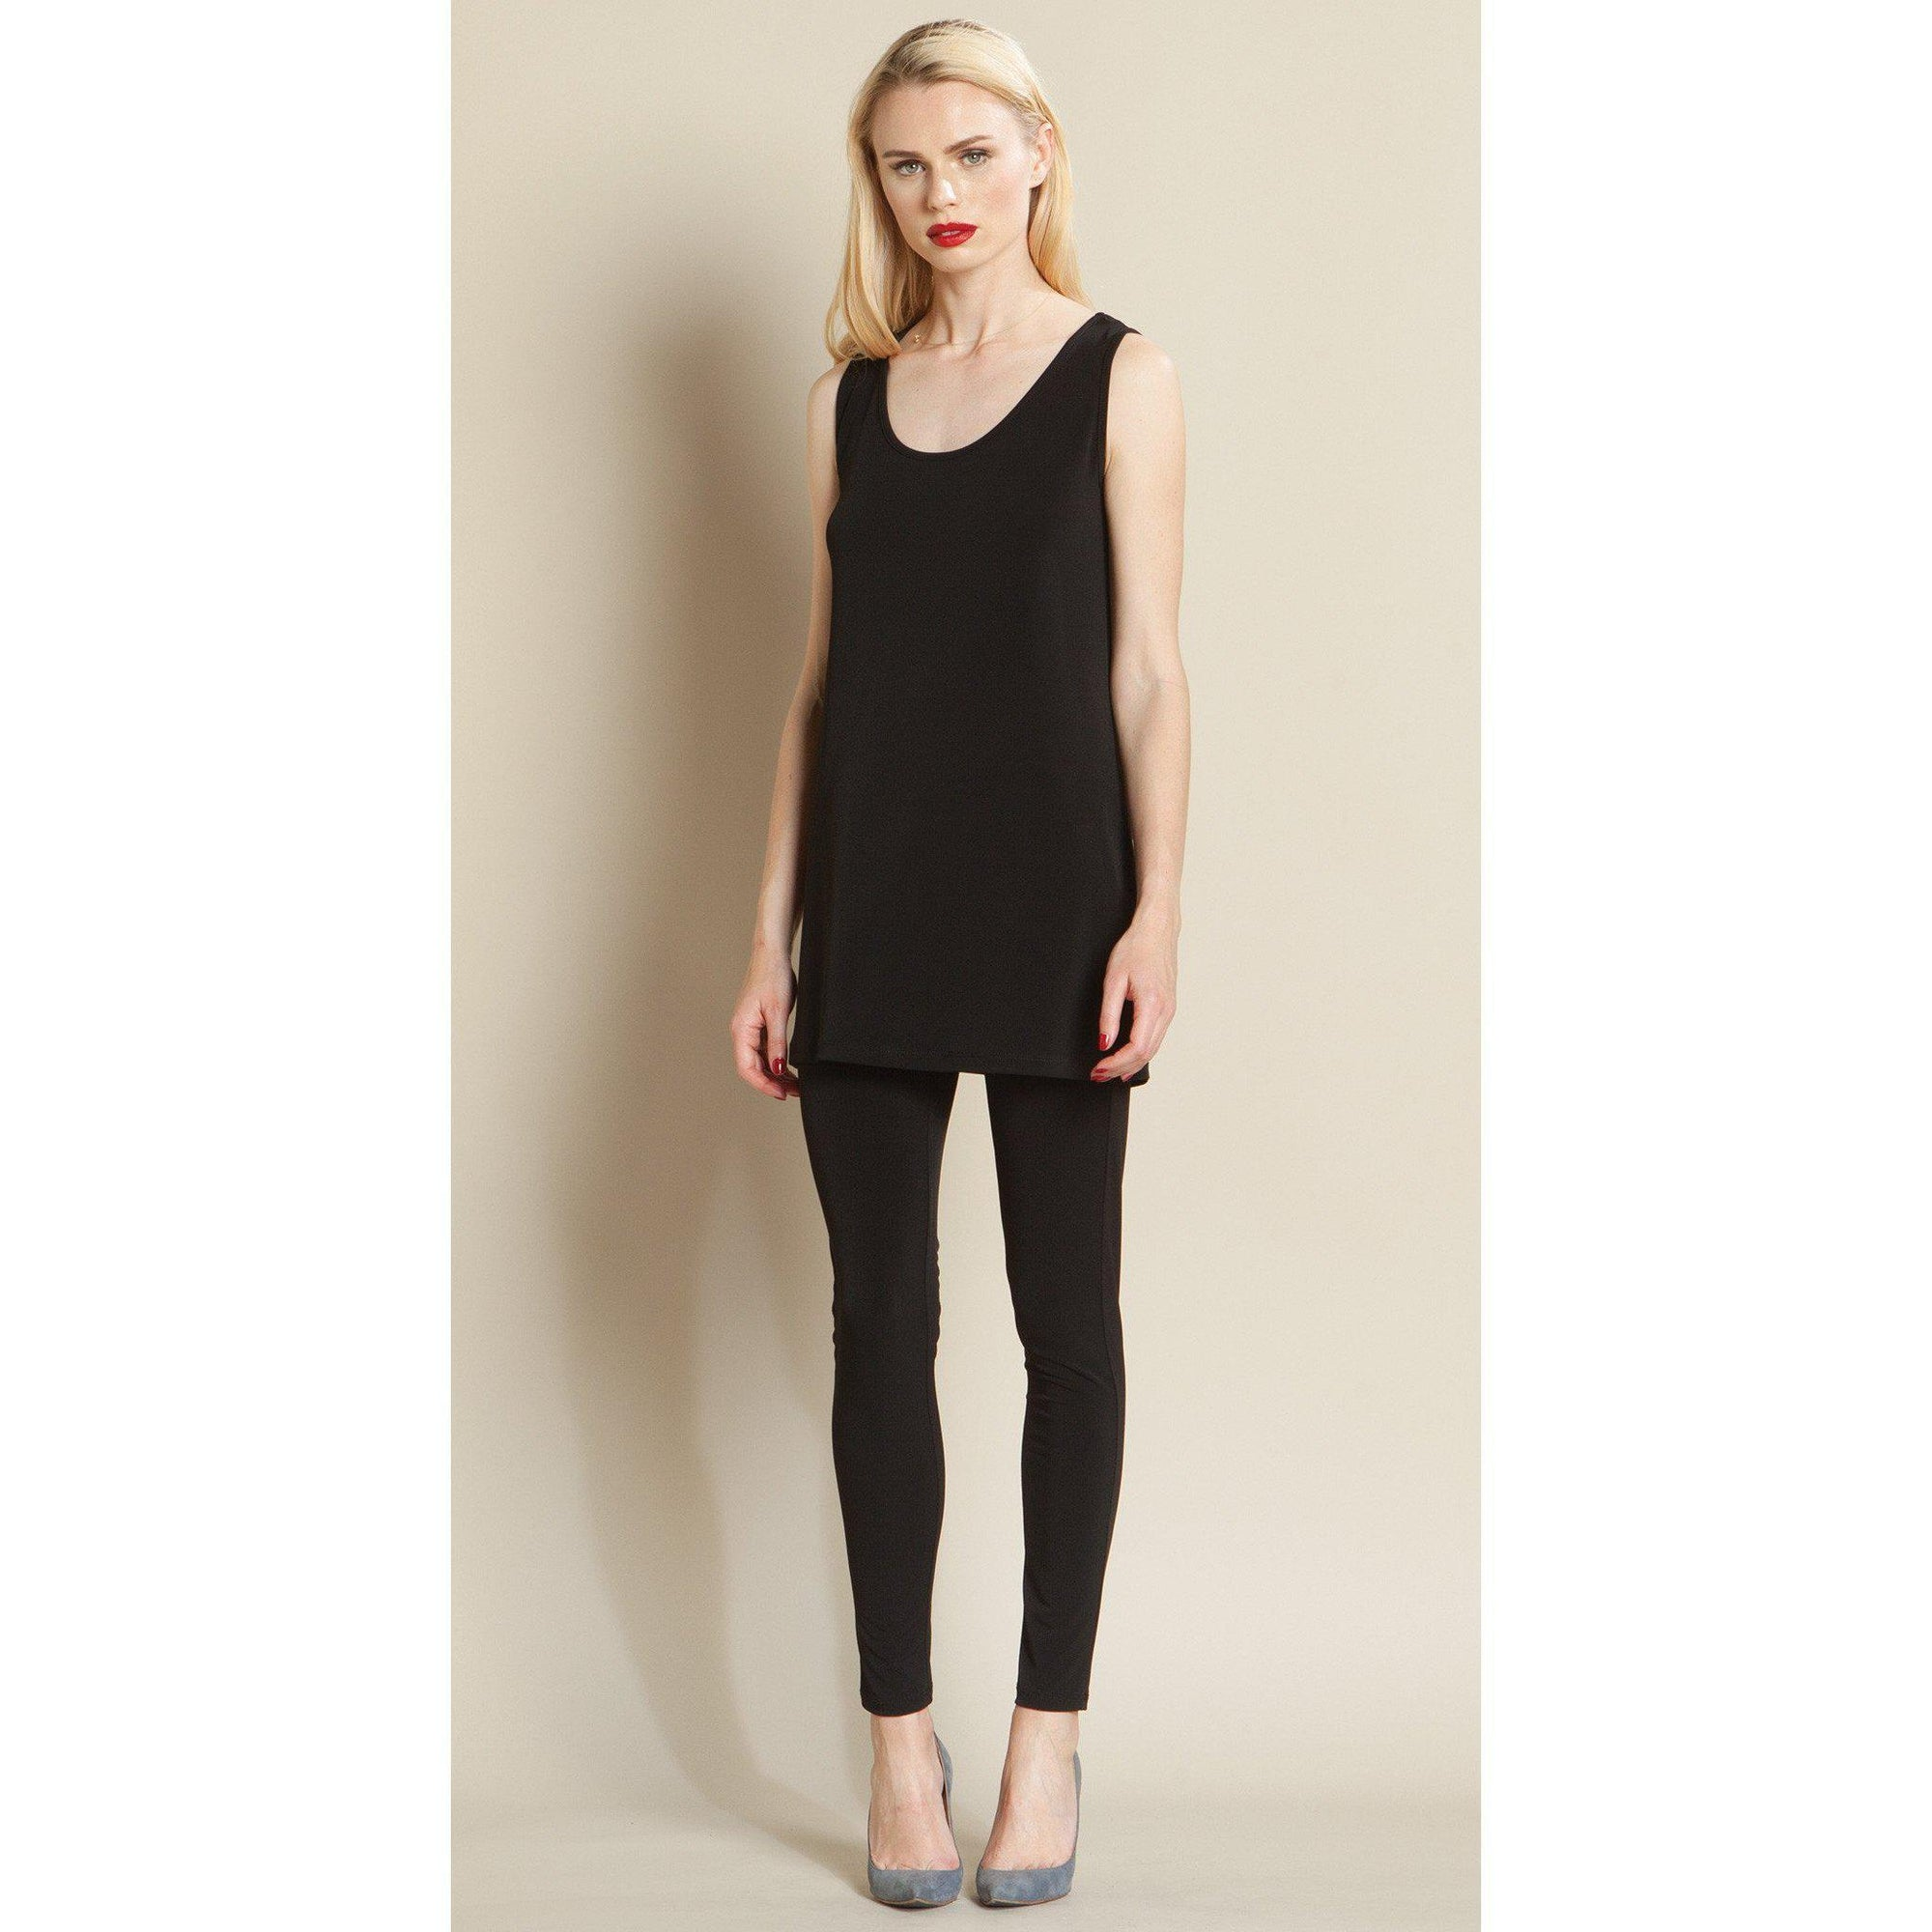 Long Scoop Tank - Solid-Tank-Clara Sun Woo-Small-Black-Lizzy's Pink Boutique